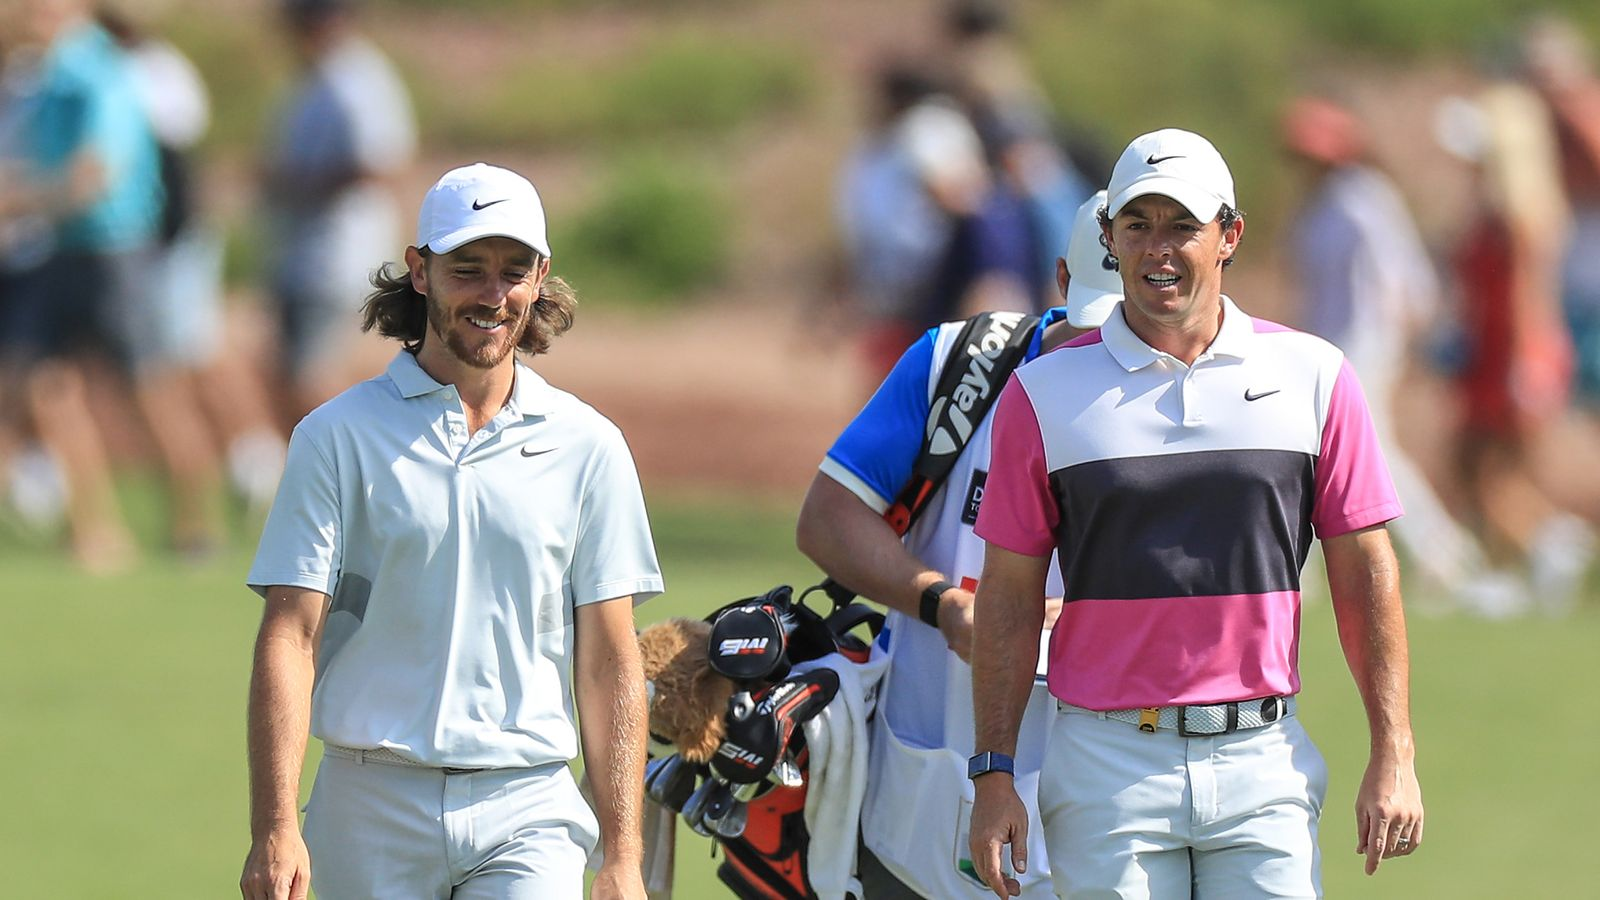 WGC-Mexico Championship: Tee times for opening round at Chapultepec